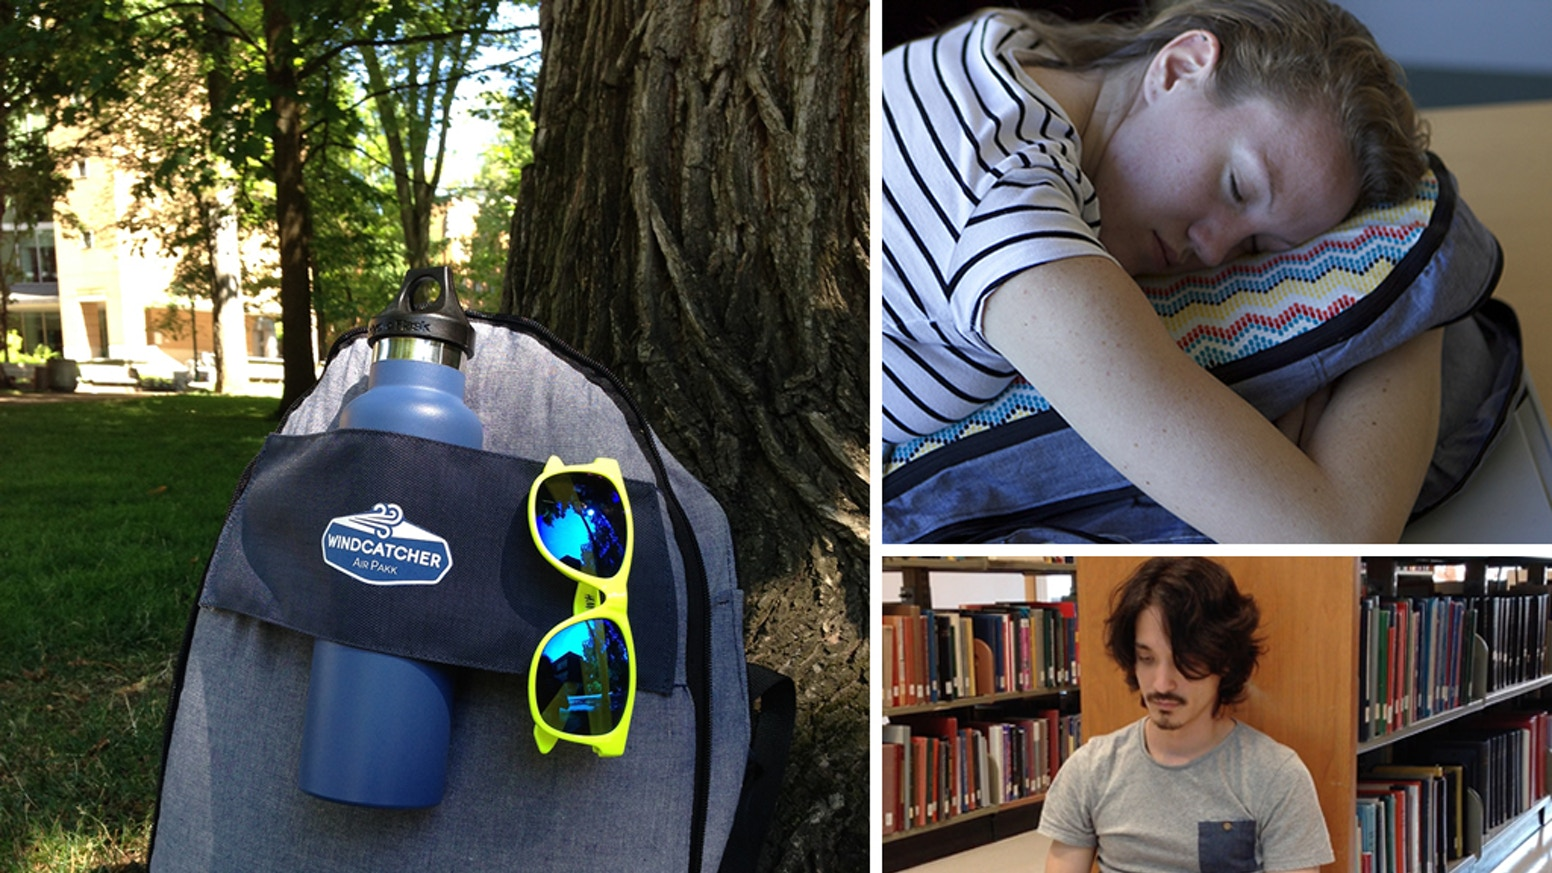 Backpack Pillow Air Pakk Self Inflating Backpack Doubles As Pillow Pad By Ryan